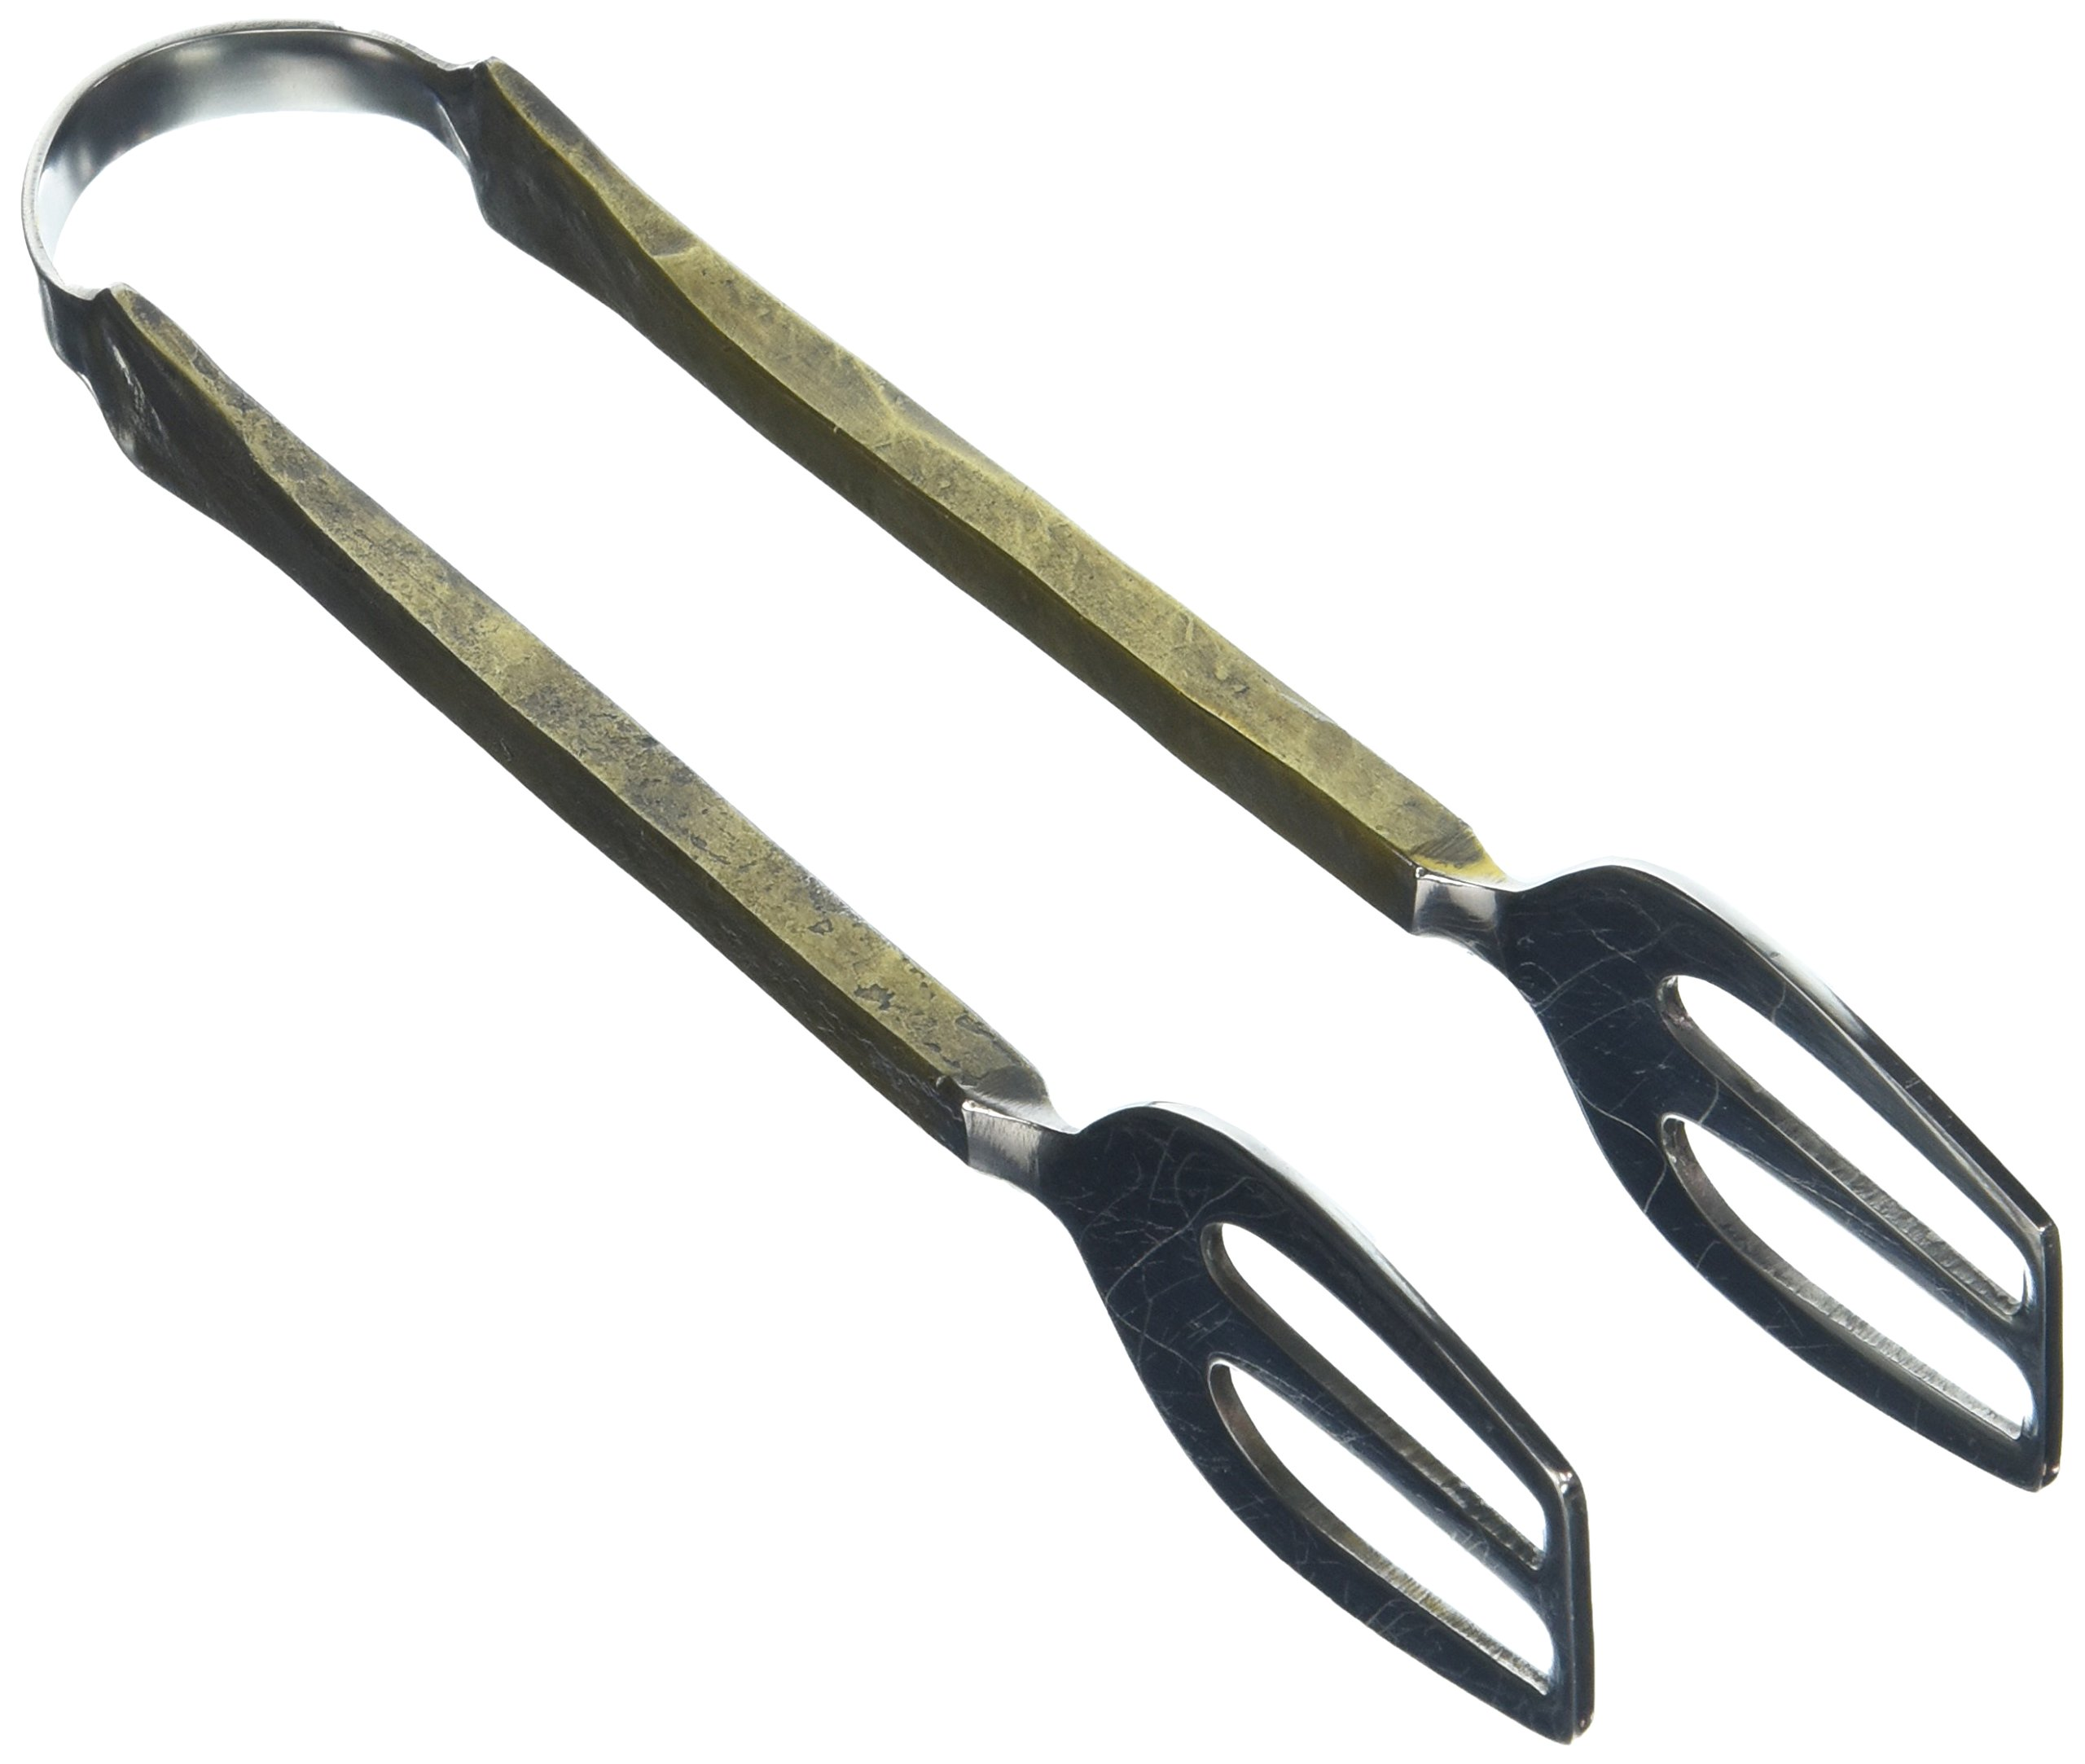 Abbott Collection Antiqued Gold Stainless Steel Ice Tongs by Abbott Collection